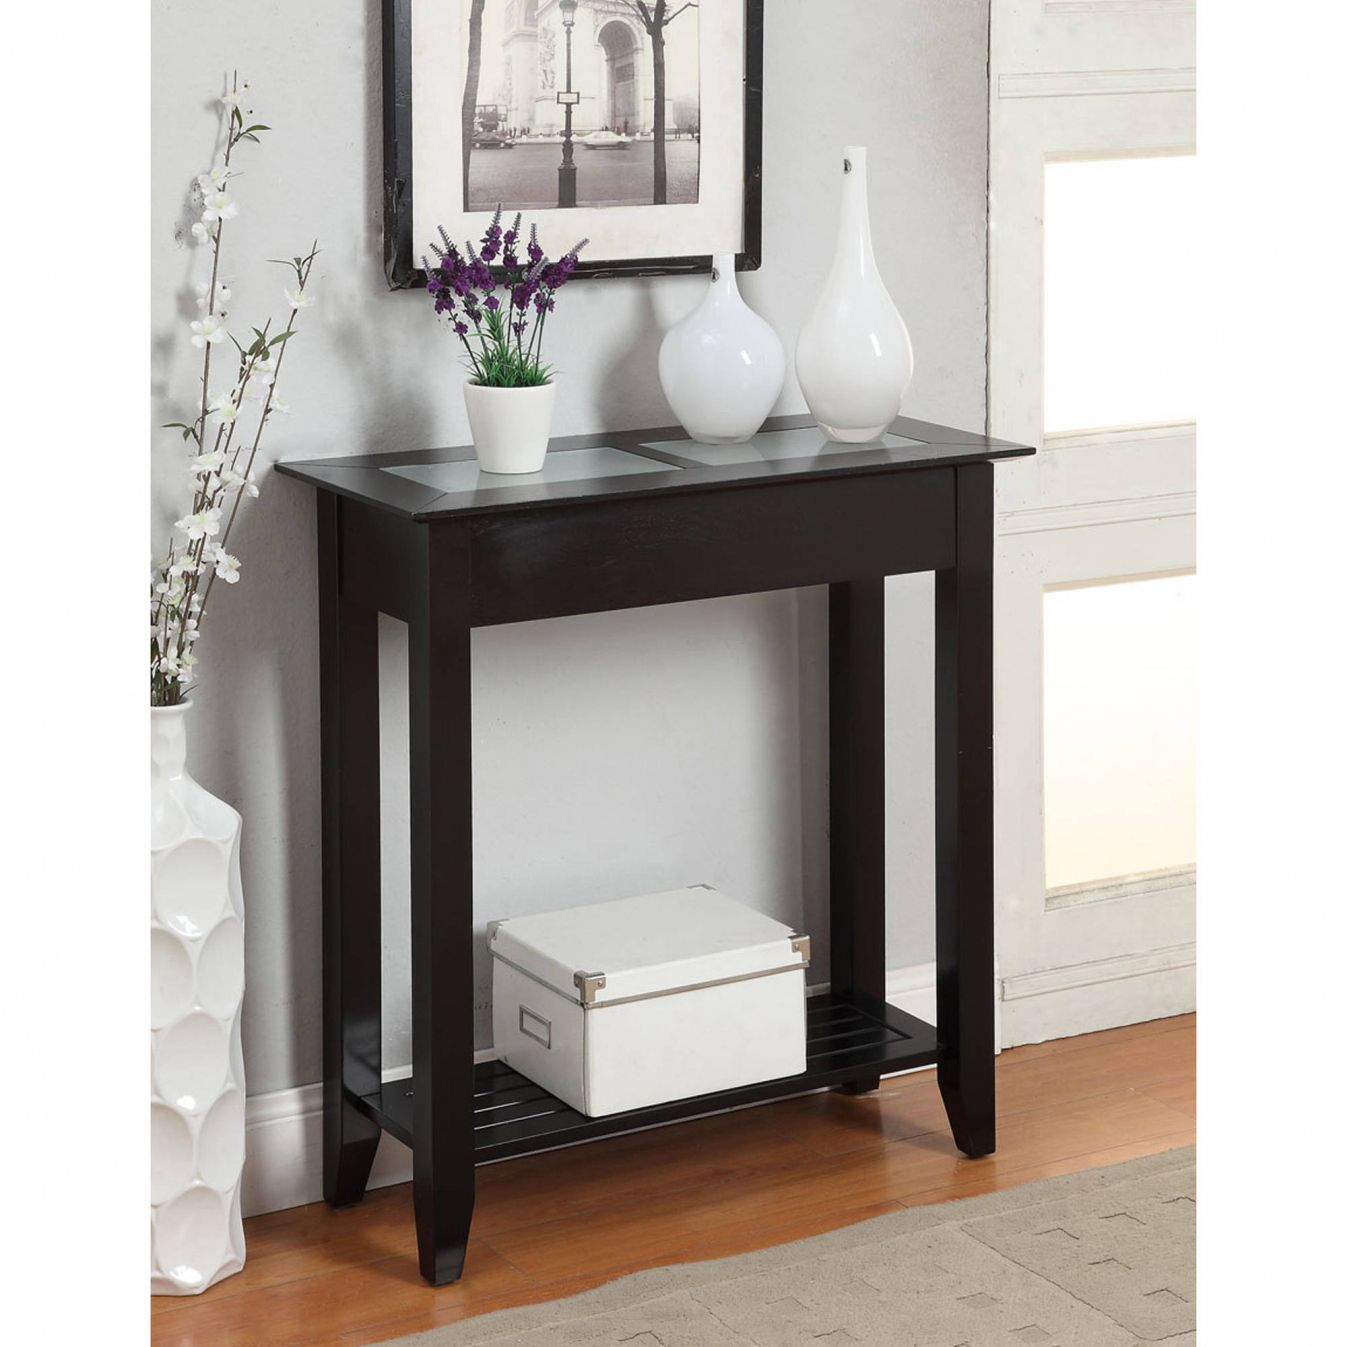 Small Black Hall Table Elite Modern Furniture Check more at http